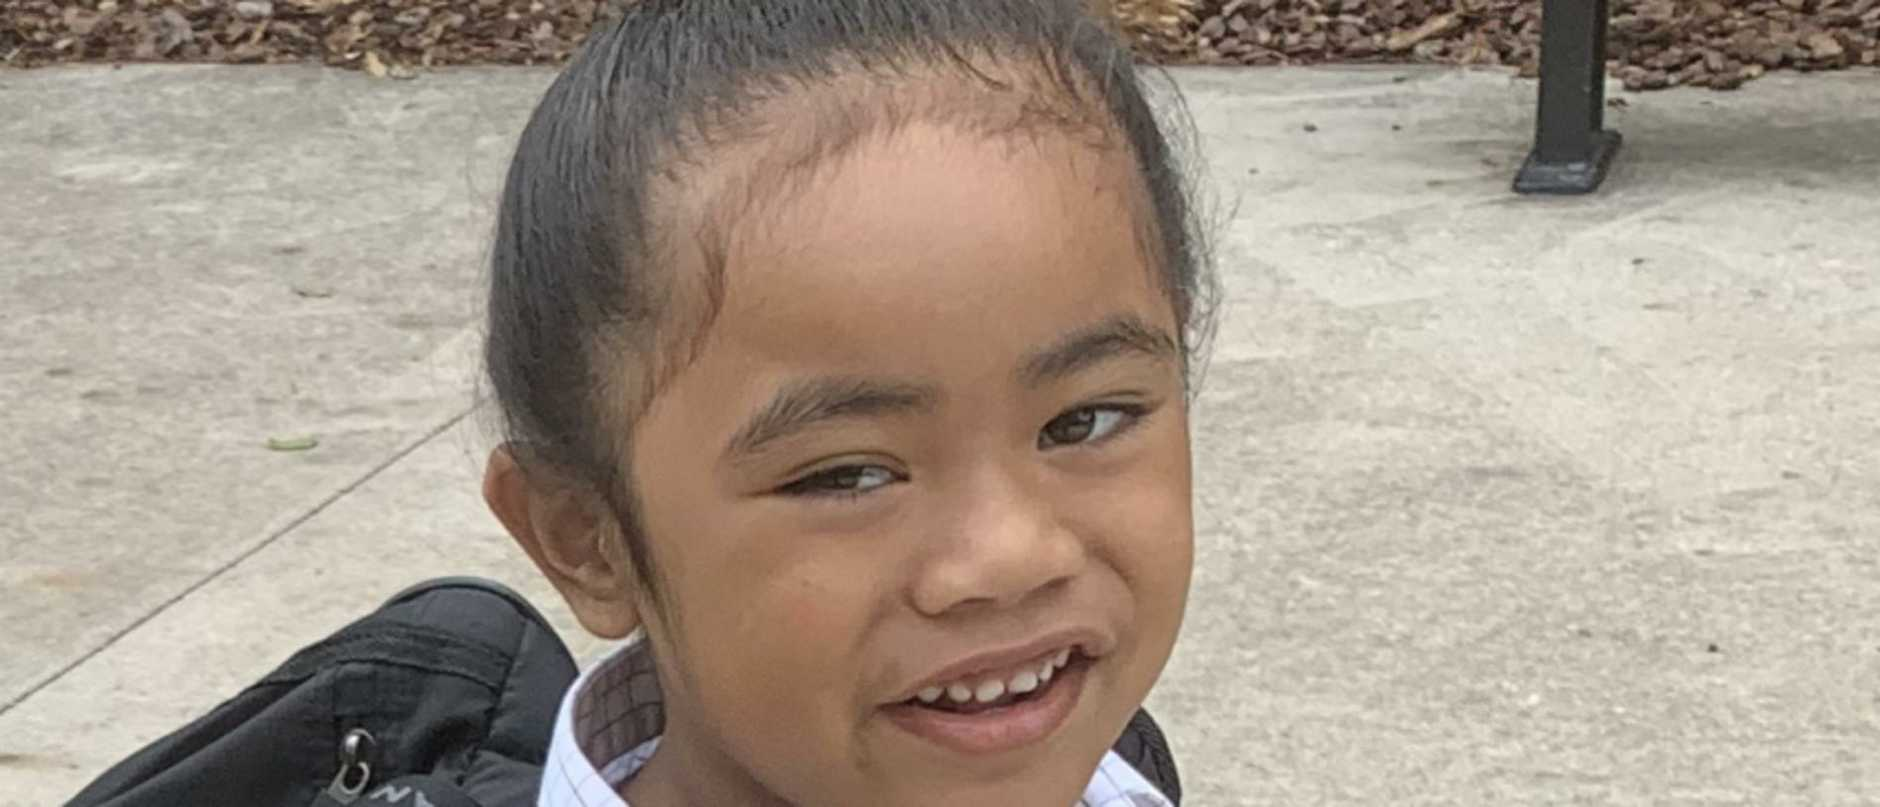 Australian Christian College Moreton has told five-year-old Cyrus Taniela he will need to cut his bun to meet school dress policies but his traditional hair-cutting ceremony is not for a year.